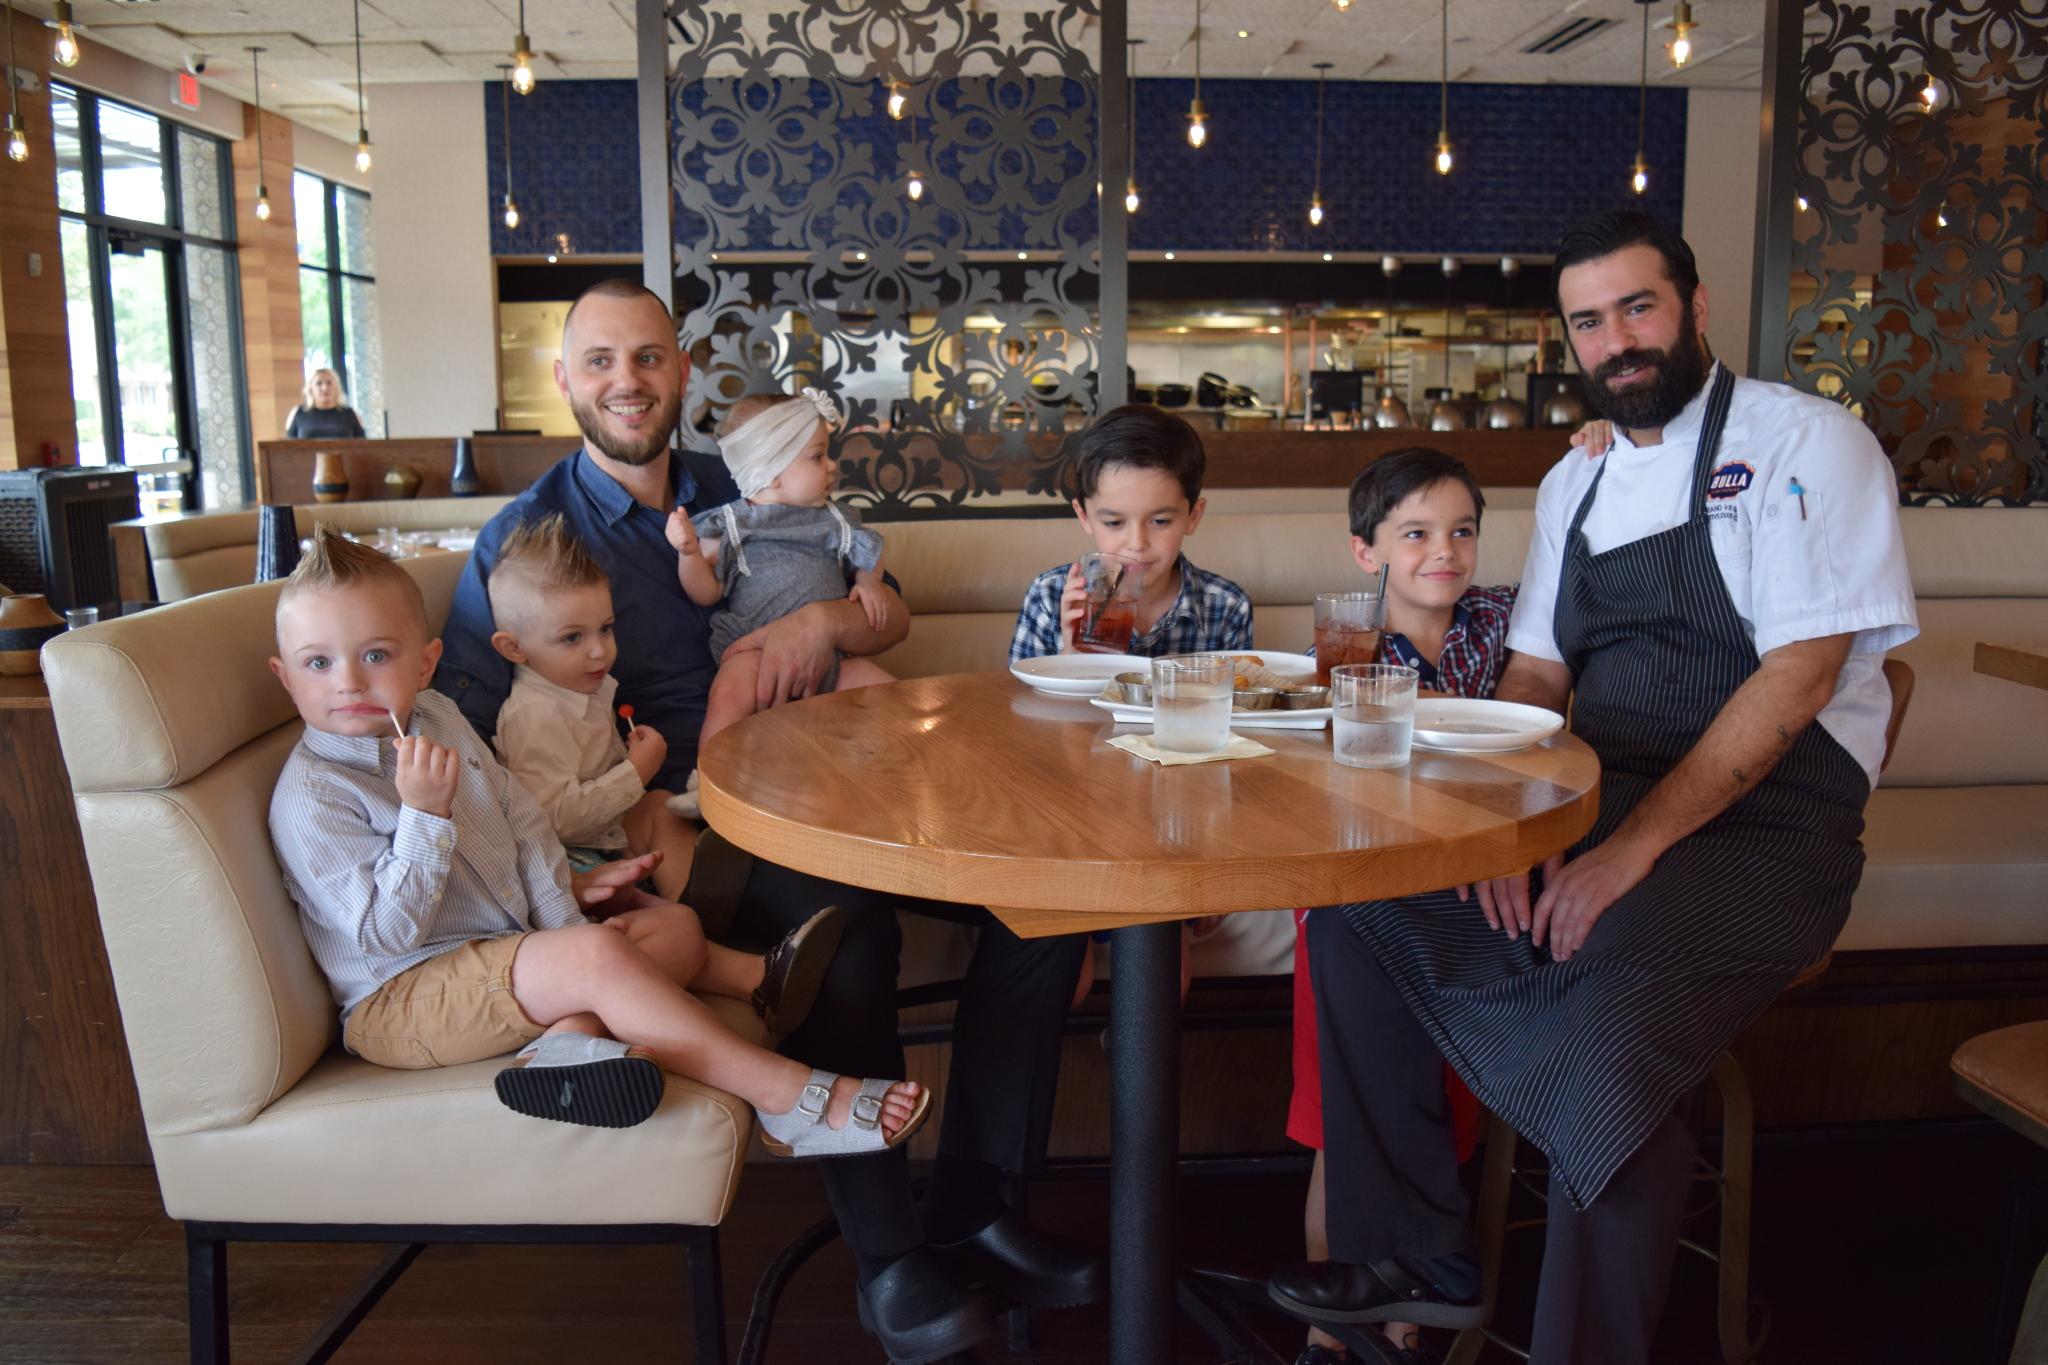 Father S Day Specials In Orlando 2018 Tasty Chomps Orlando Food Blog